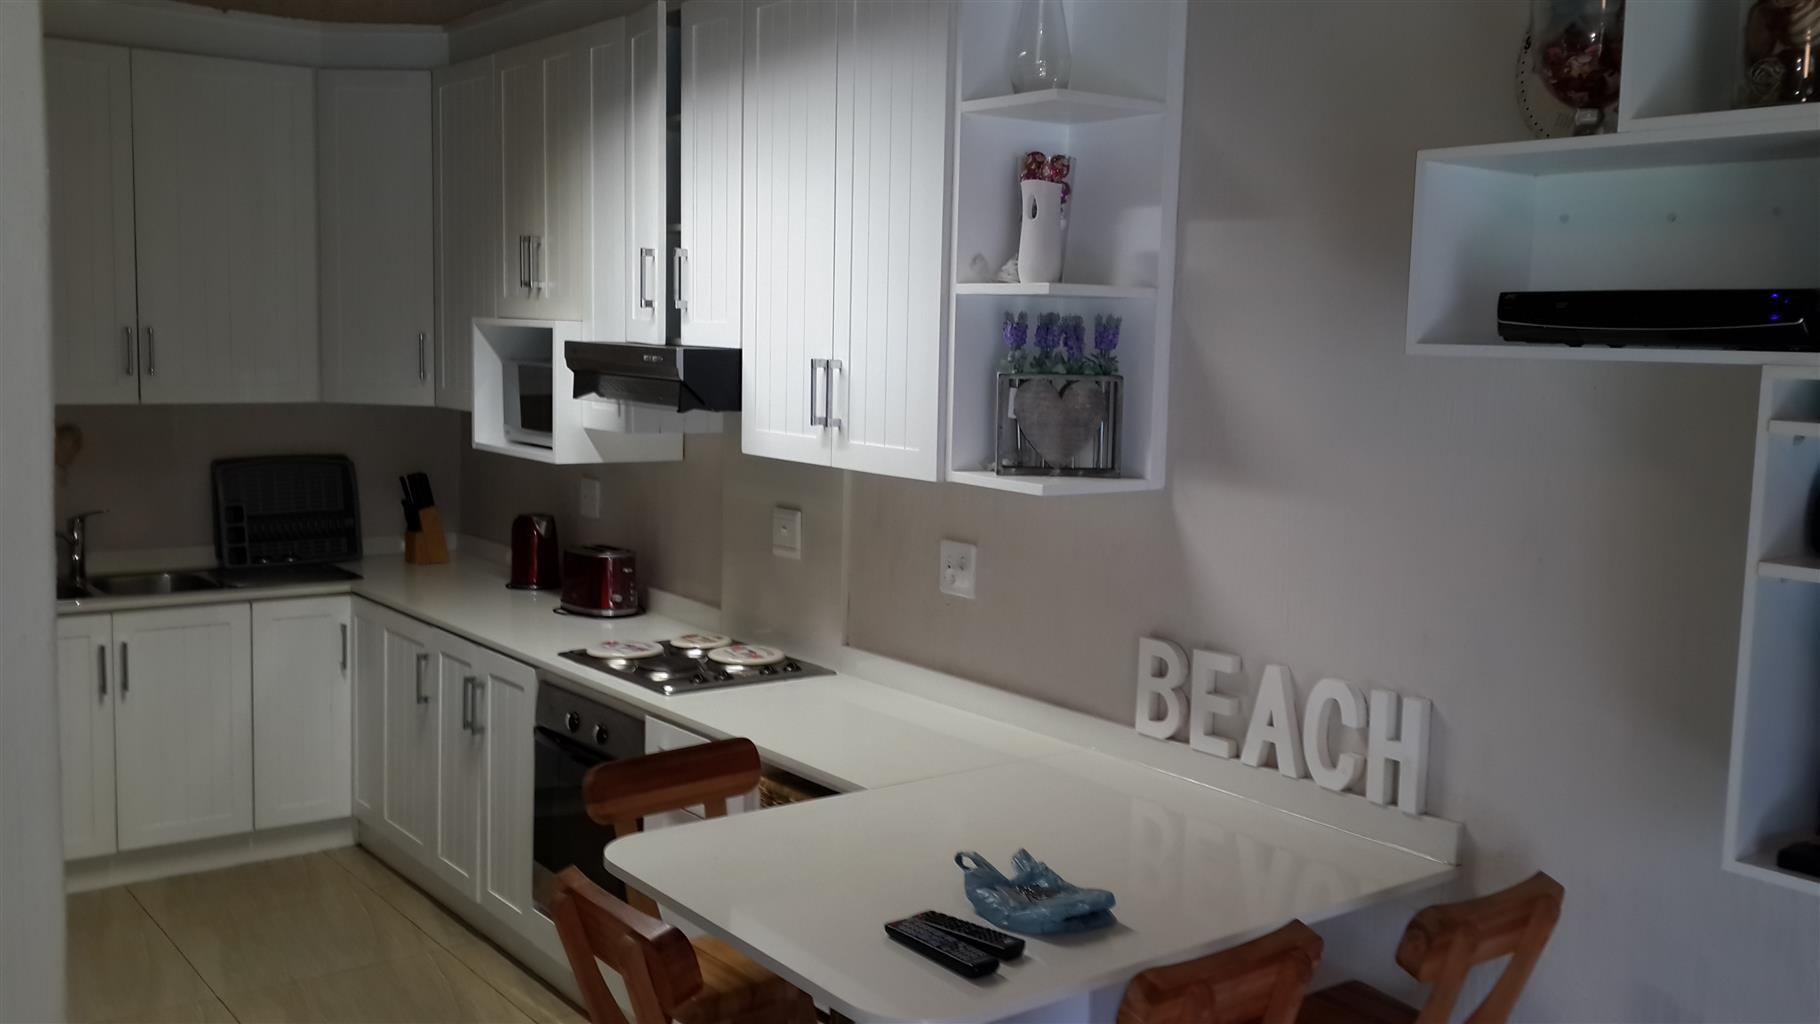 2 BEDROOMS - WINKELSPRUIT -GORGEOUS SELF-CATERING-GROUND FLOOR-24 HR SECURITY-RIGHT ON THE BEACH-MAX 6 GUESTS